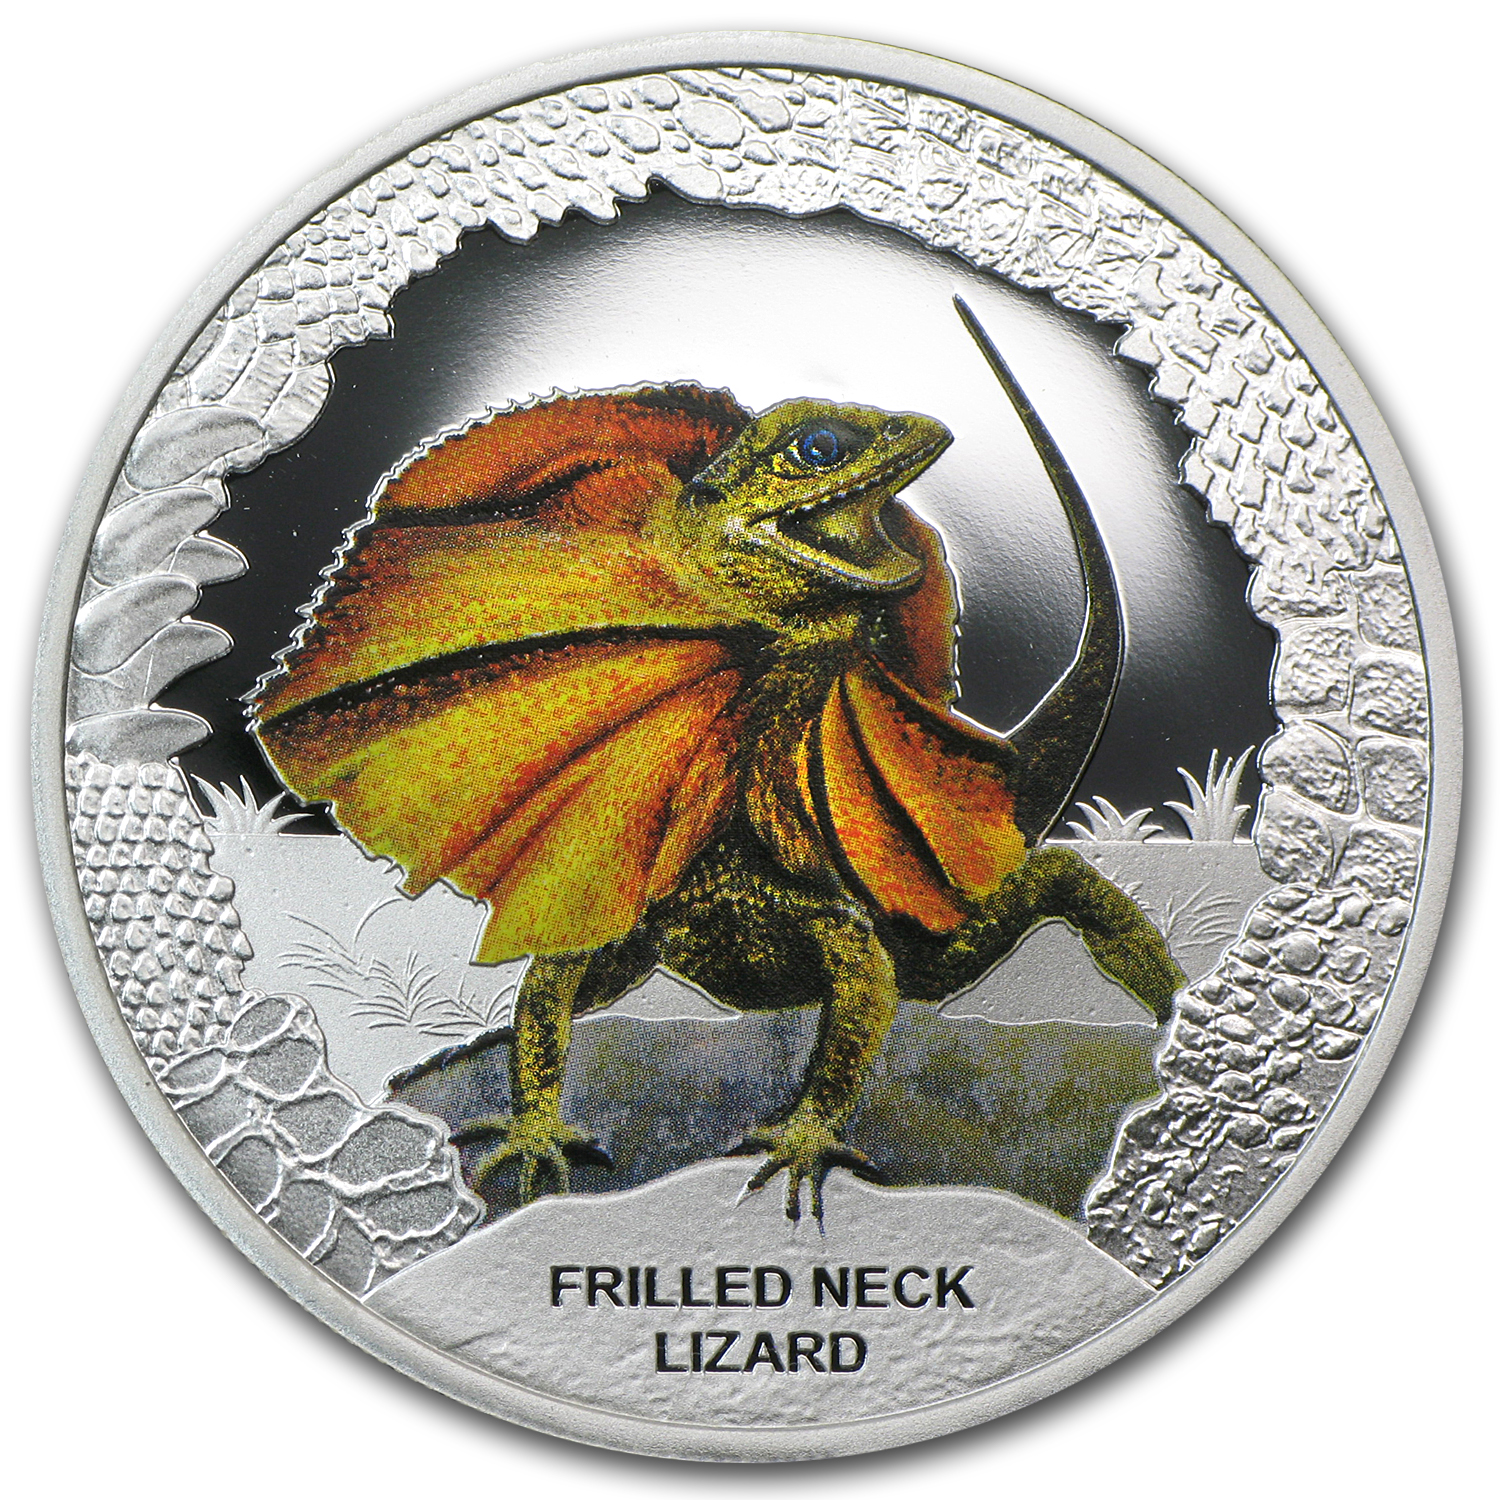 2013 Tuvalu Silver $1 Reptile Series The Frilled Neck Lizard